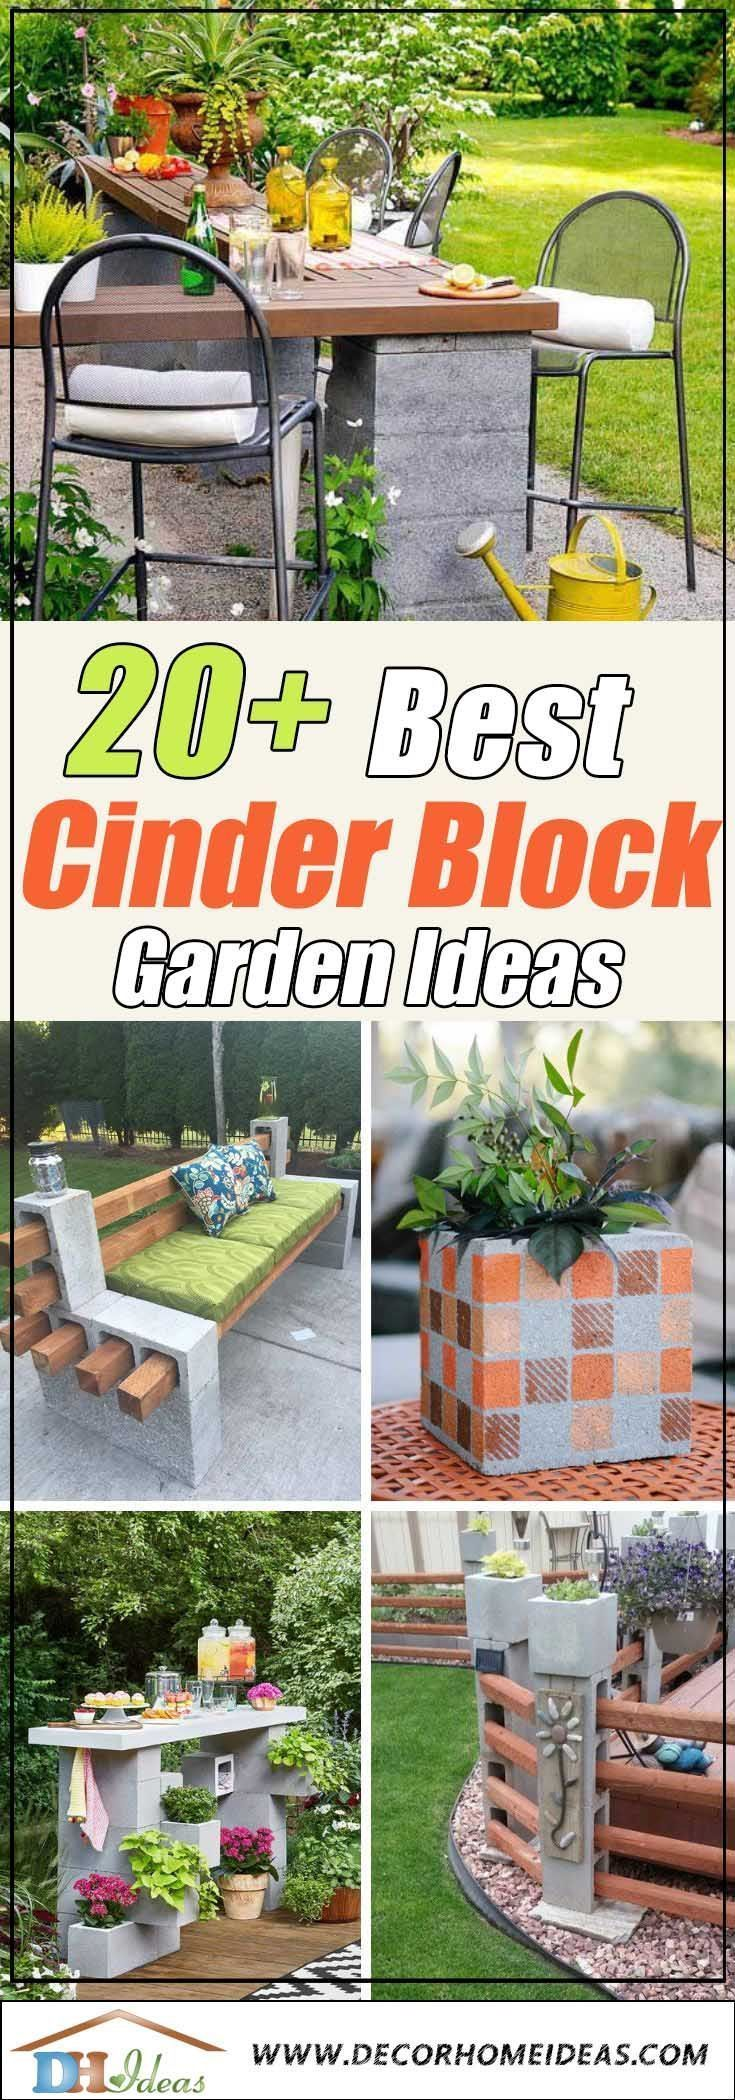 20+ Cool Ways To Use Cinder Blocks In The Garden #betonblockgarten 20 Cool Ways To Use Cinder Blocks In The Garden #cinderblocks #betonblockgarten 20+ Cool Ways To Use Cinder Blocks In The Garden #betonblockgarten 20 Cool Ways To Use Cinder Blocks In The Garden #cinderblocks #betonblockgarten